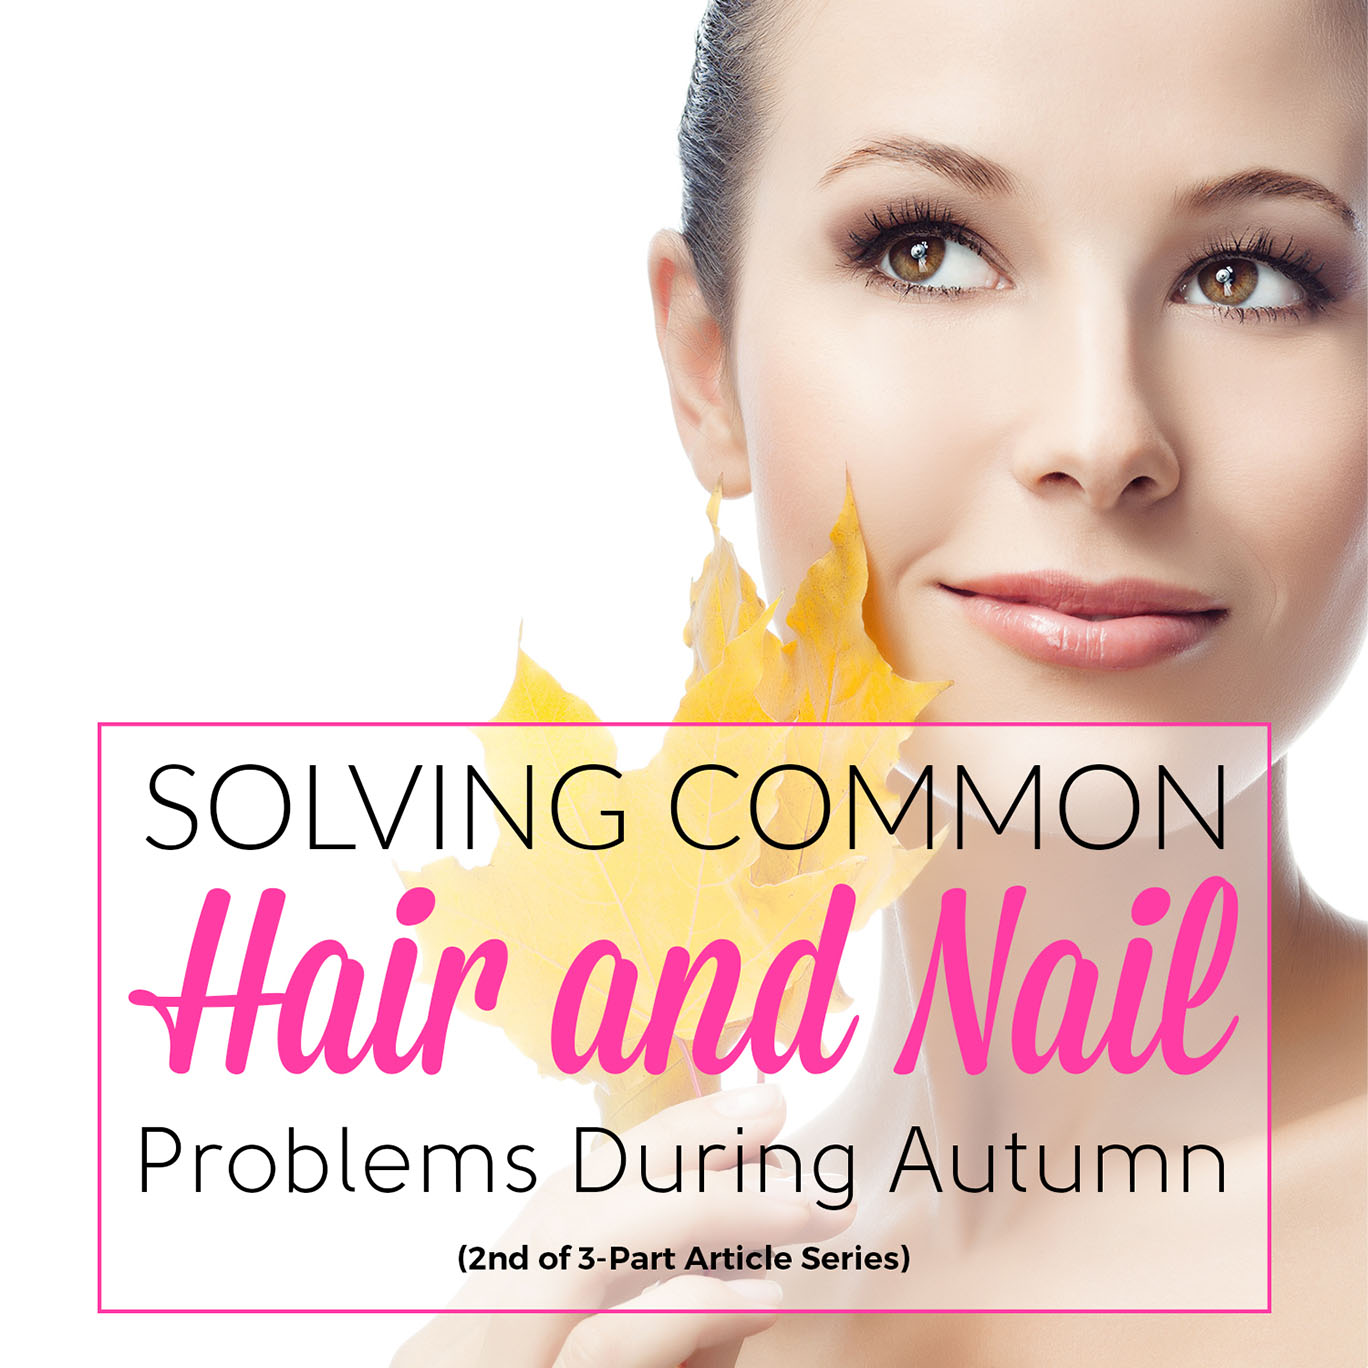 Solving Common Hair and Nail Problems During Autumn